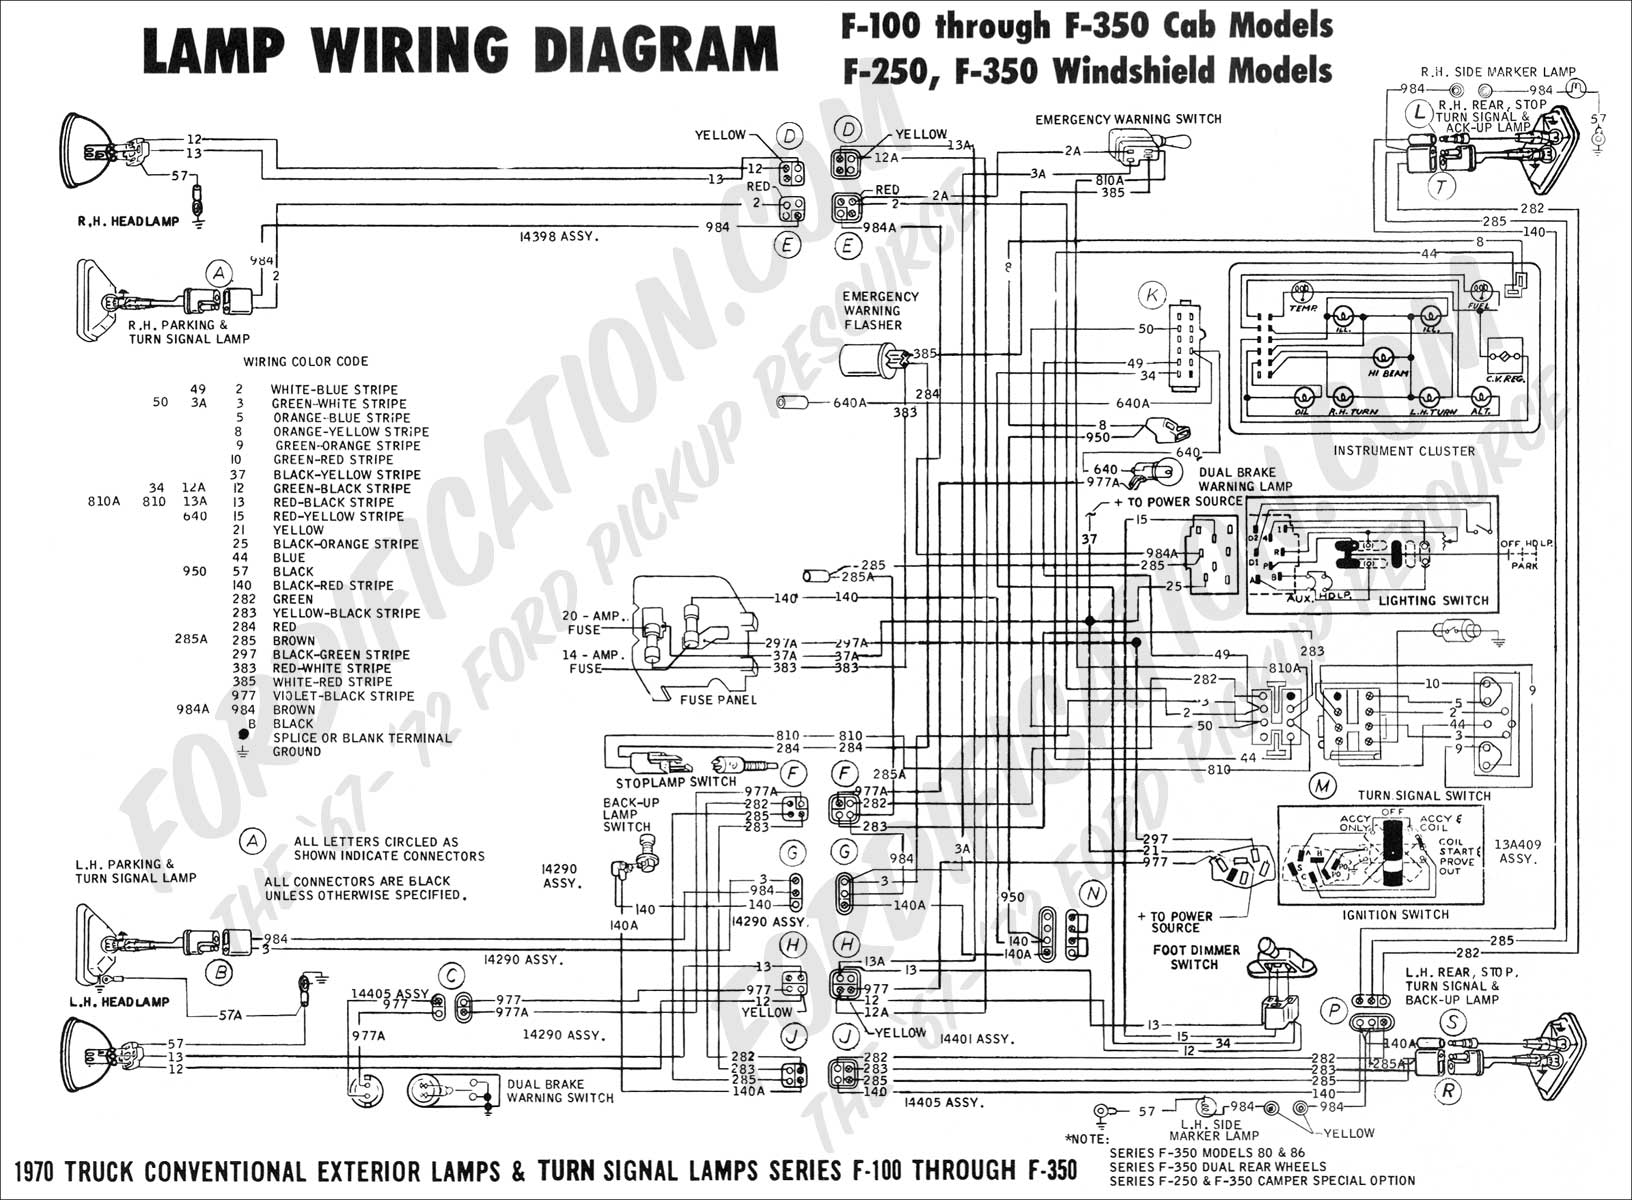 wiring diagram_70ext lights01 2008 ford f250 wiring diagram 2008 ford f250 remote start wiring 2000 Ford F-250 Wiring Diagram at n-0.co